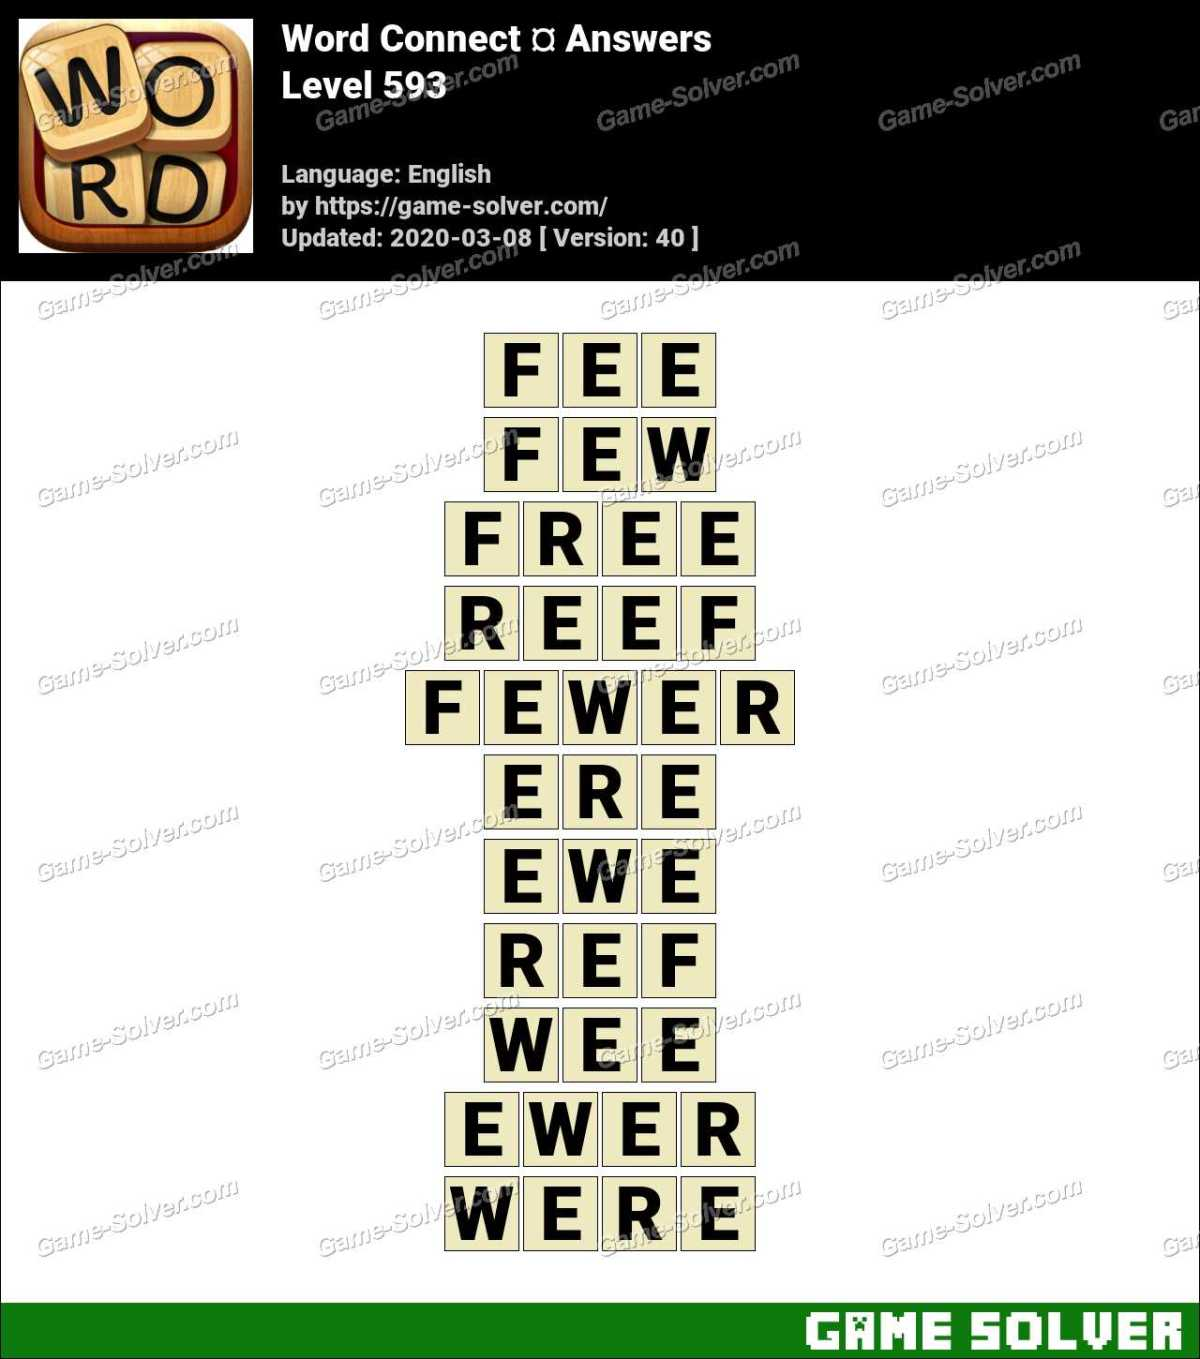 Word Connect Level 593 Answers